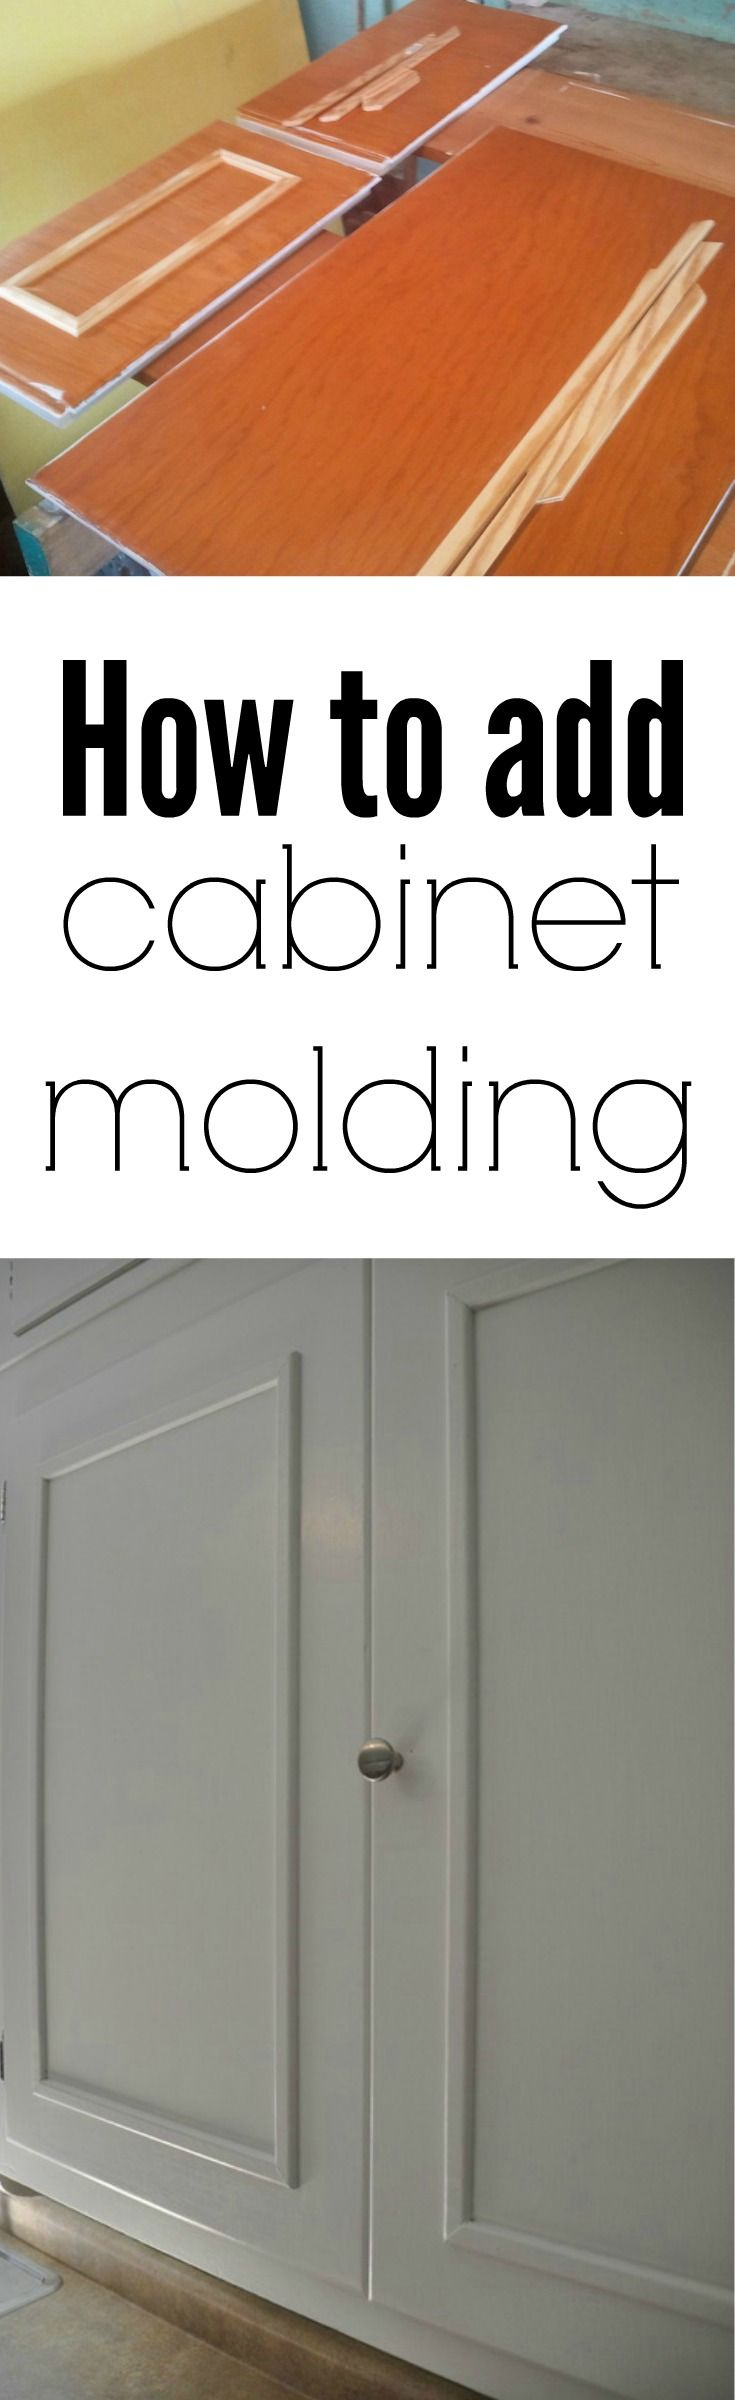 How To Add Cabinet Molding Cabinet Molding Old Kitchen